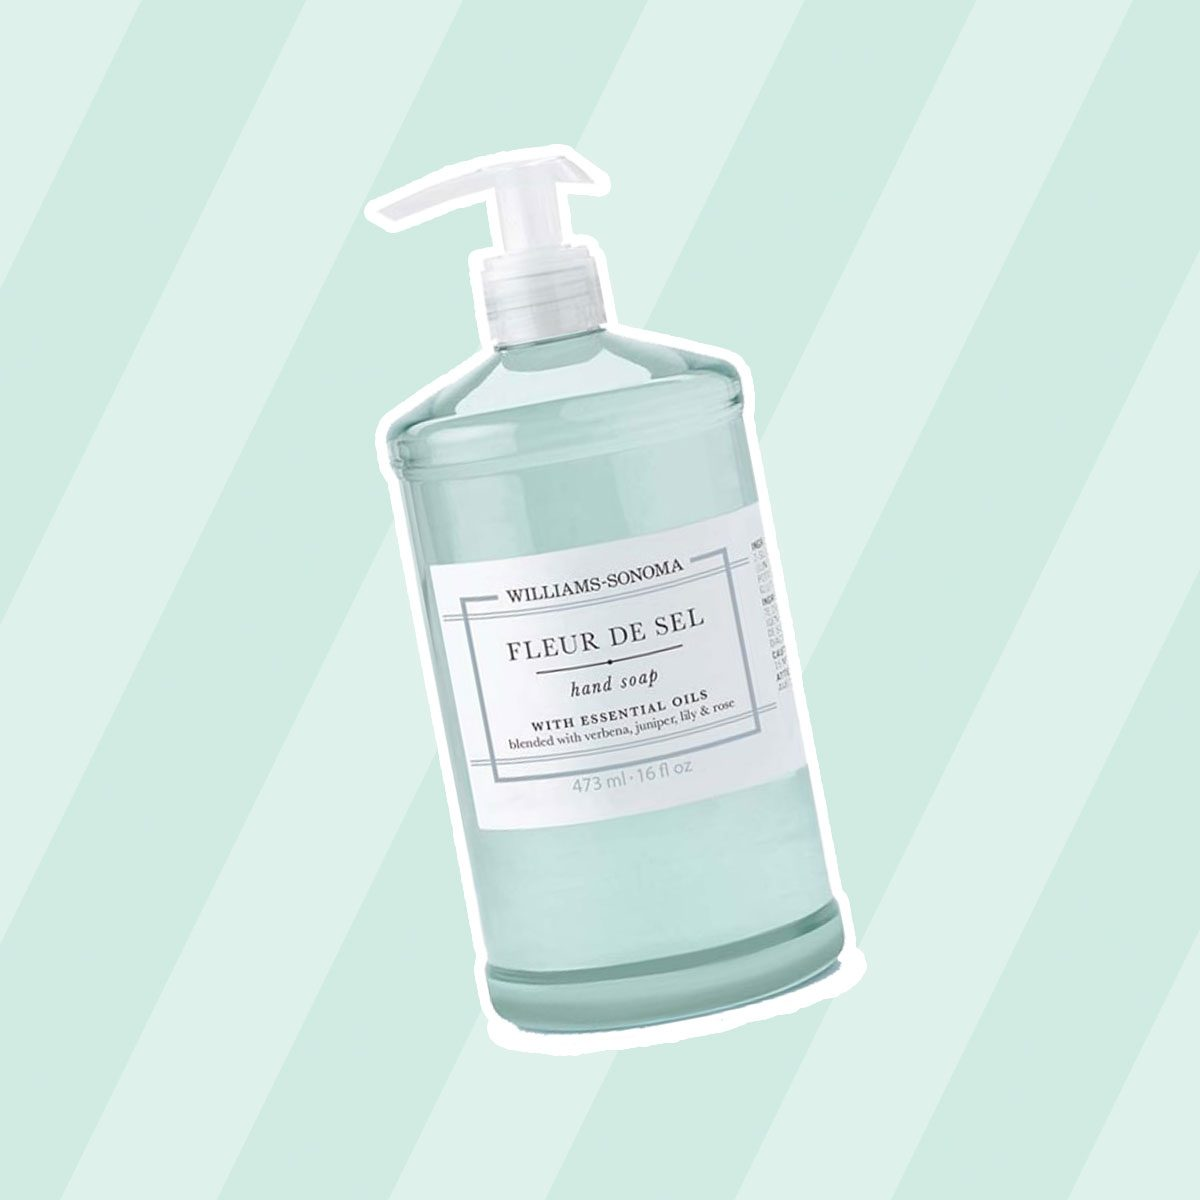 Williams Sonoma Fleur de Sel Hand Soap, 16oz.